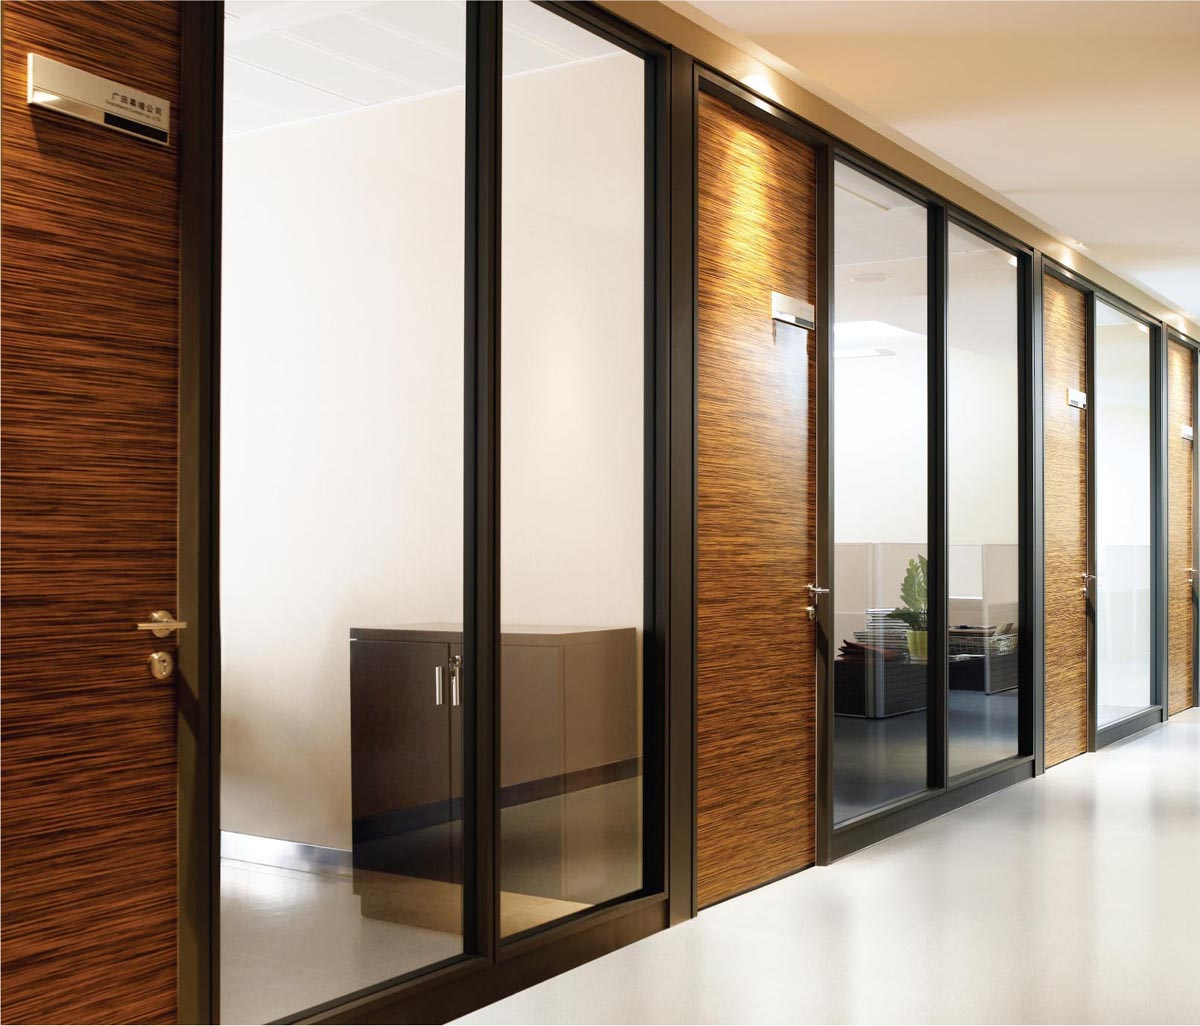 Foundation dezin decor designer wall partition - Wooden glass partition design ...